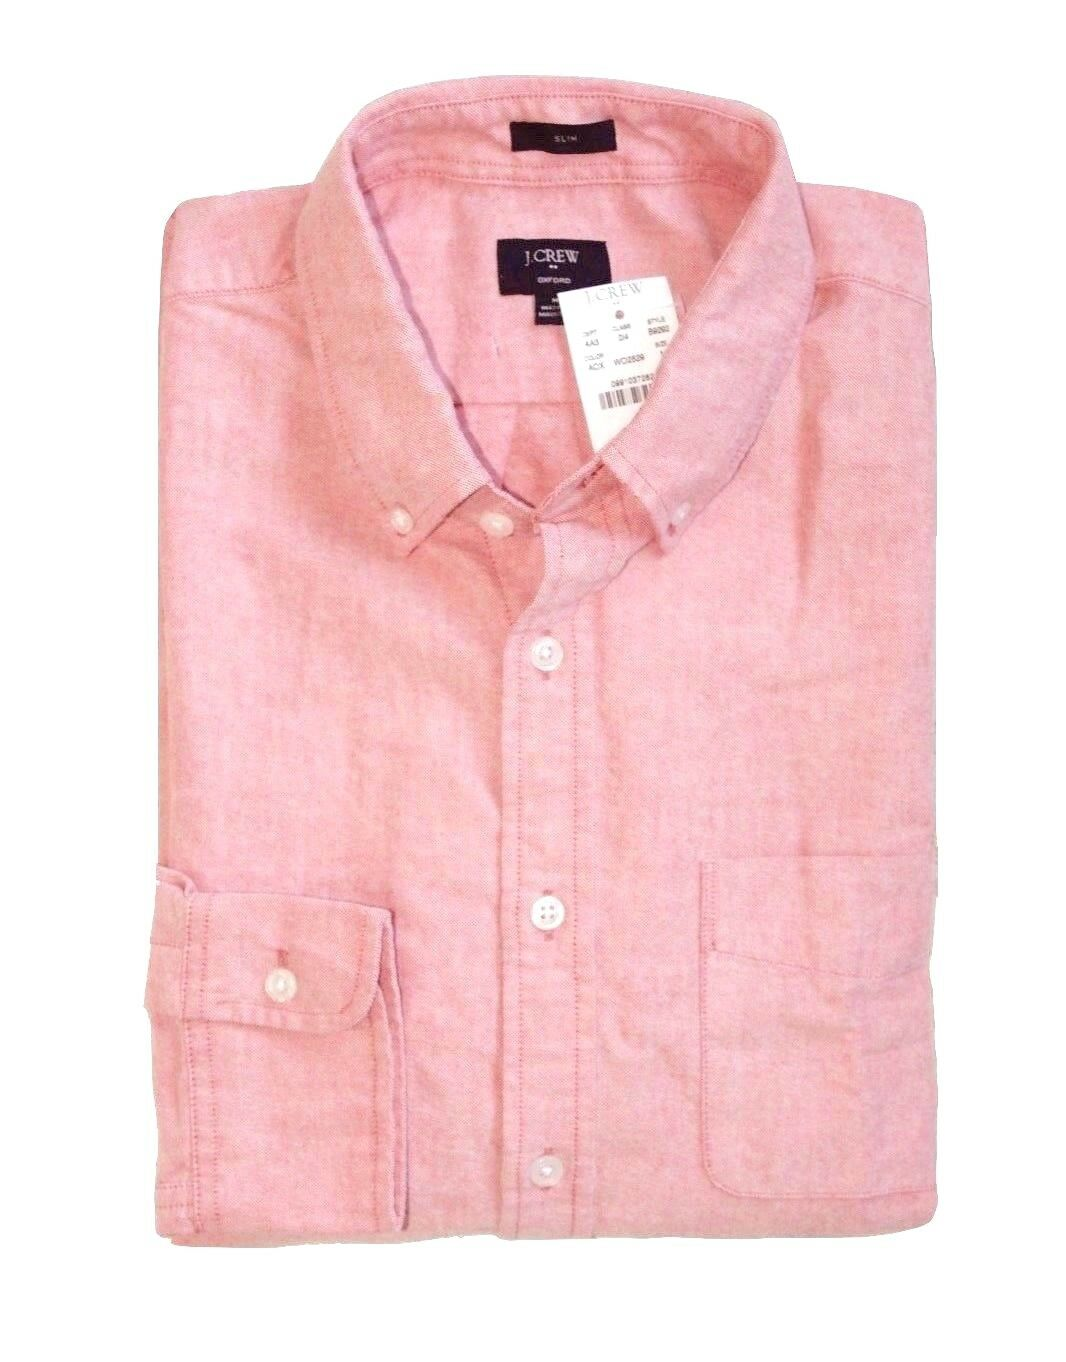 J Crew Factory - Mens XL - NWT - Slim Fit Amber Pink Old Red Cotton Oxford Shirt